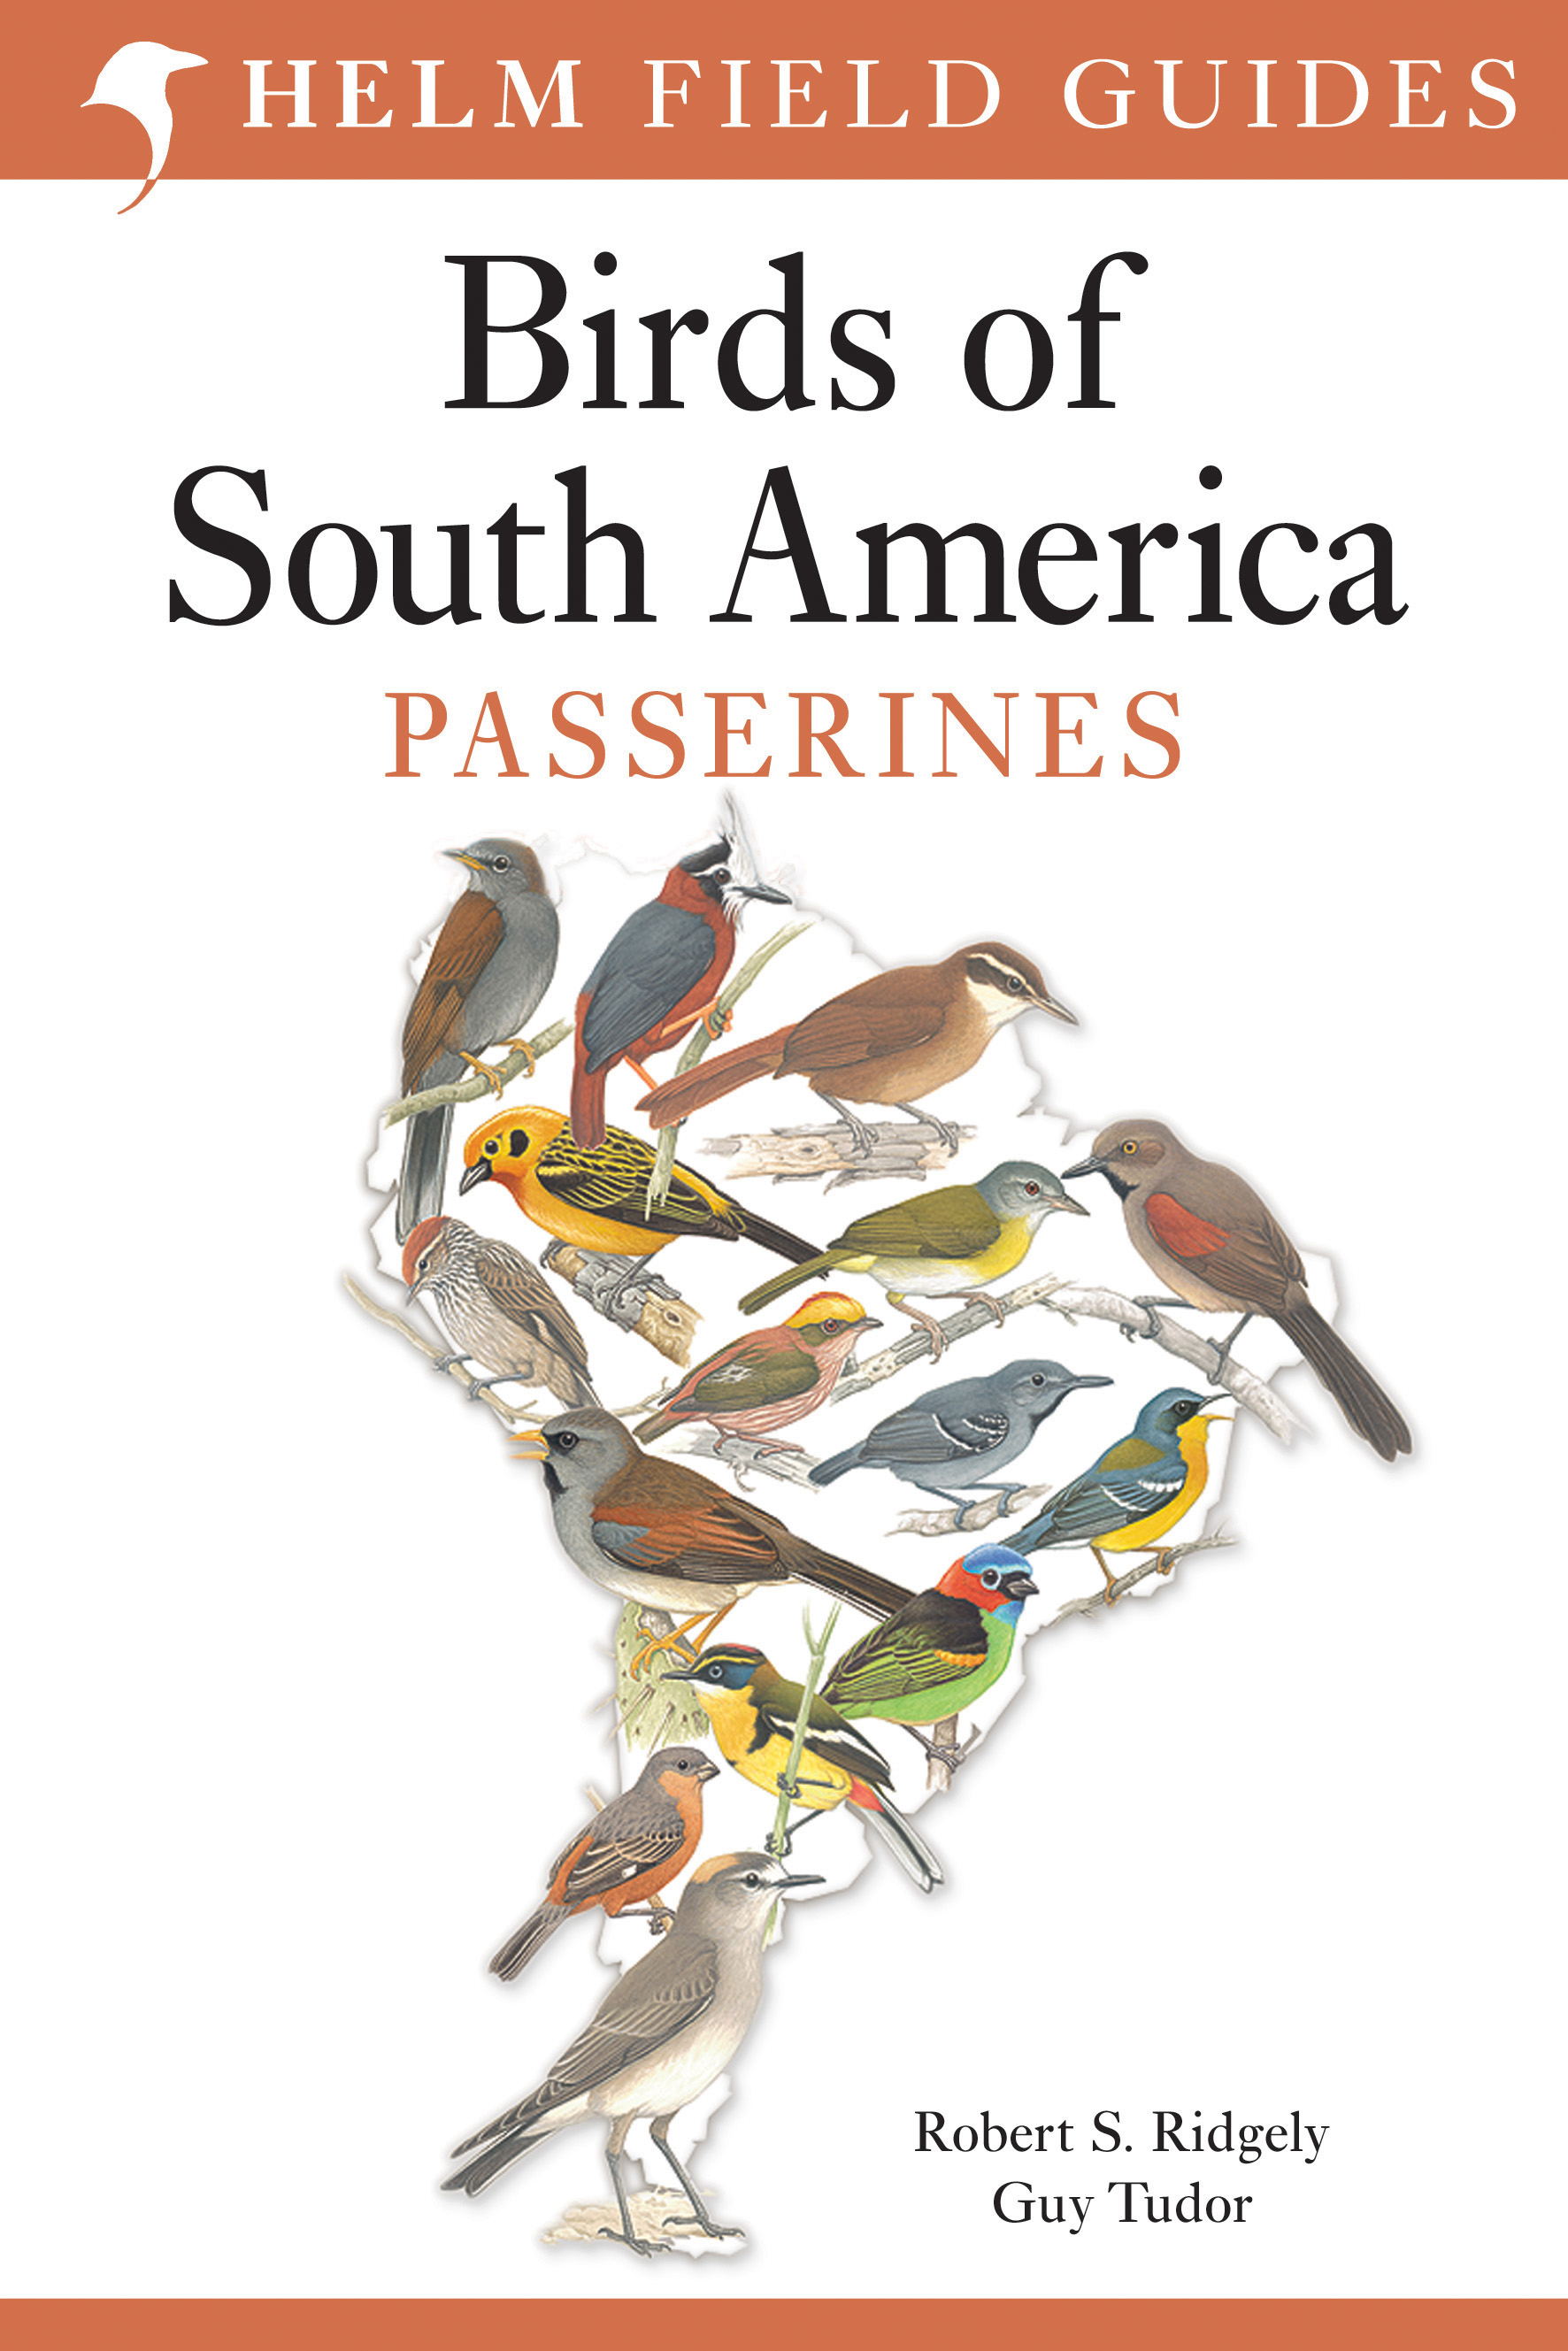 Field Guide to the Birds of South America: Passerines 9781408113424 Guy Tudor, Robert S. Ridgely Christopher Helm   Natuurgidsen, Vogelboeken Zuid-Amerika (en Antarctica)